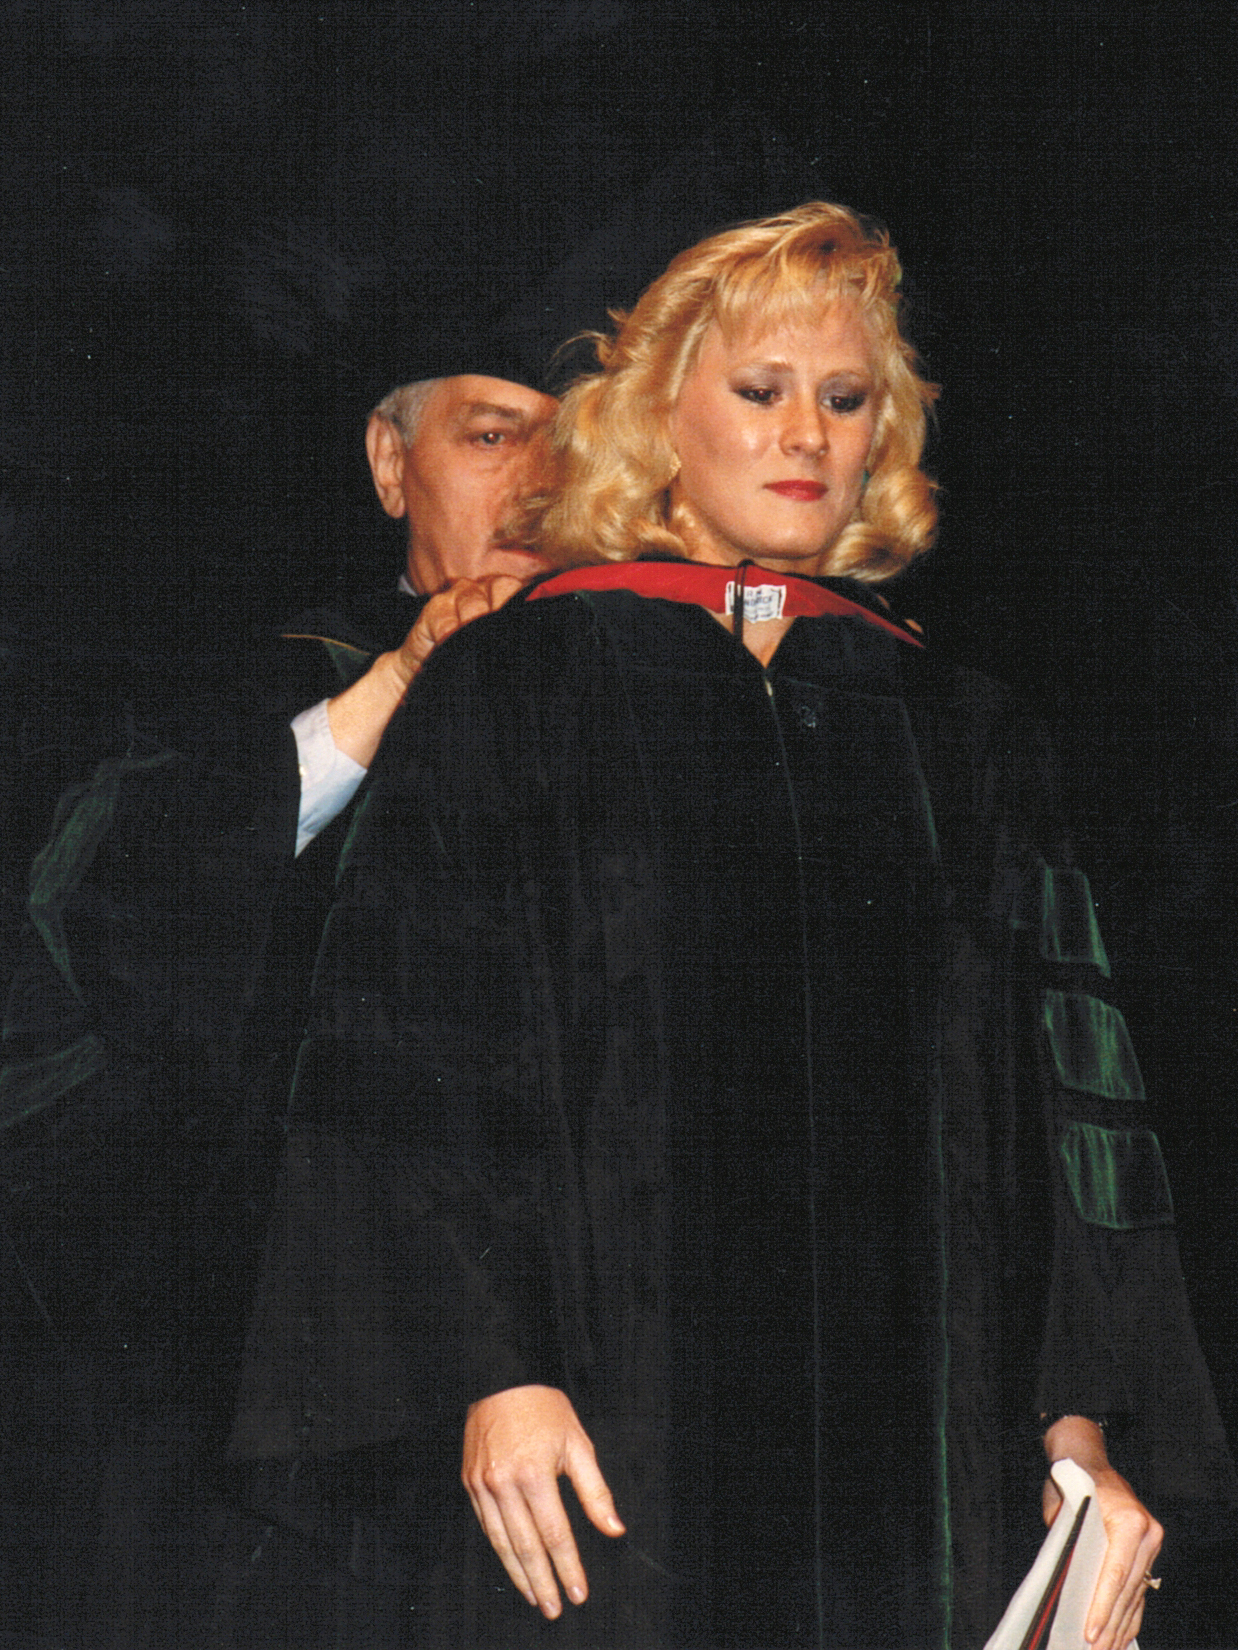 Dr. Toni Bertolet is hooded by Dr. Carl Evers after she received her Doctor of Medicine diploma in 1988.